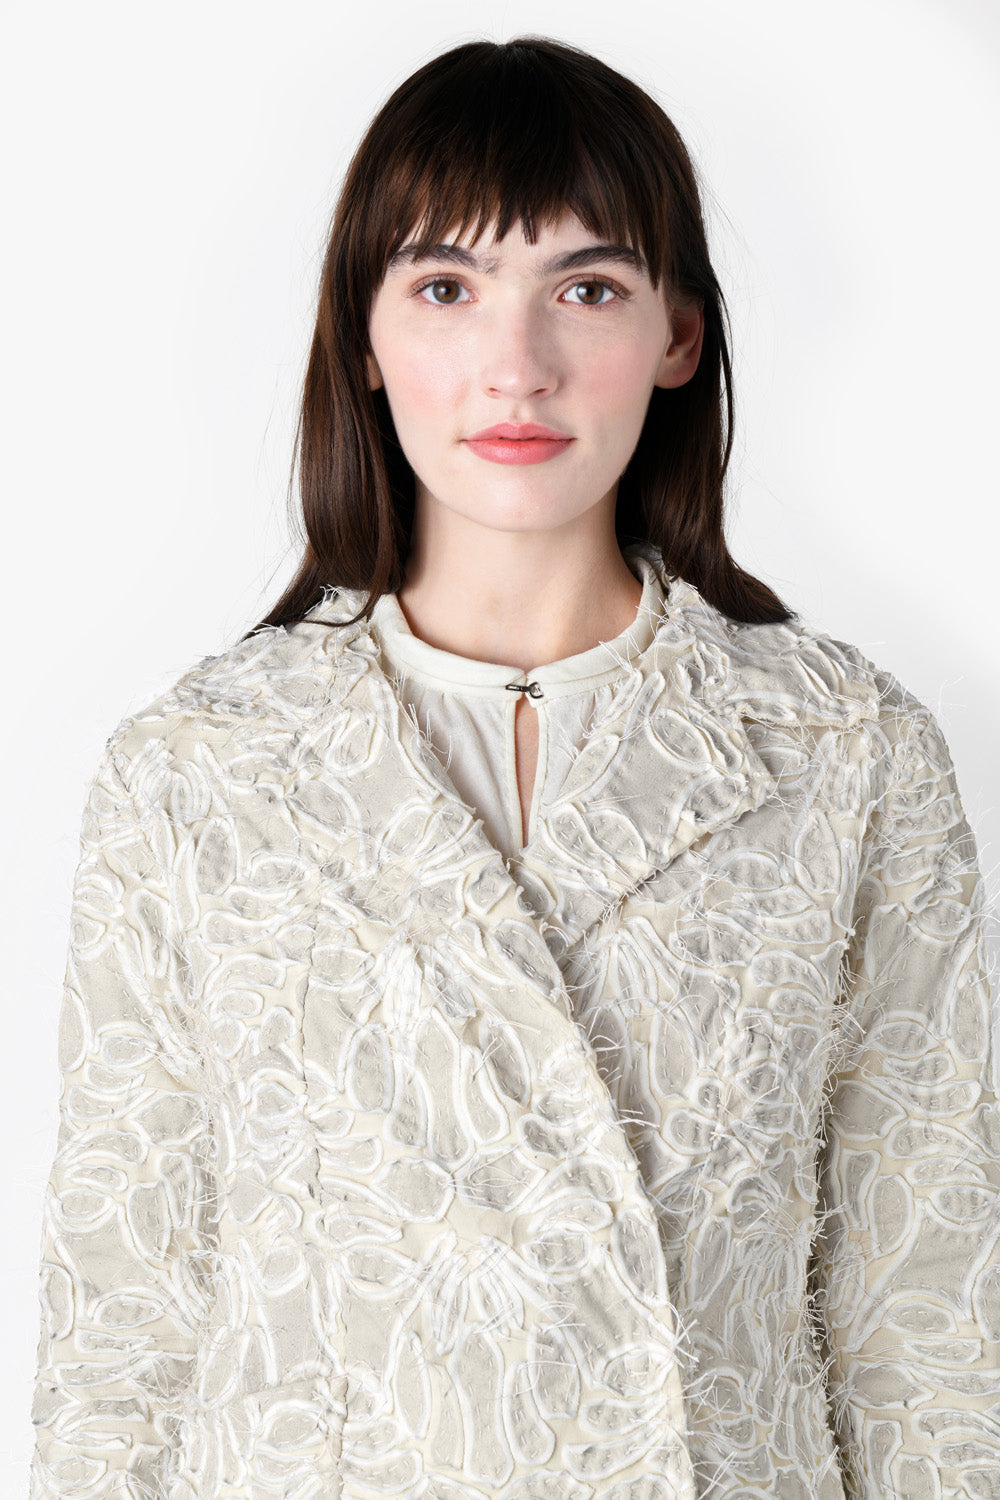 Alabama Chanin Bernadette Jacket Hand Sewn Women's Coat with Lace Pattern and Collar in Natural